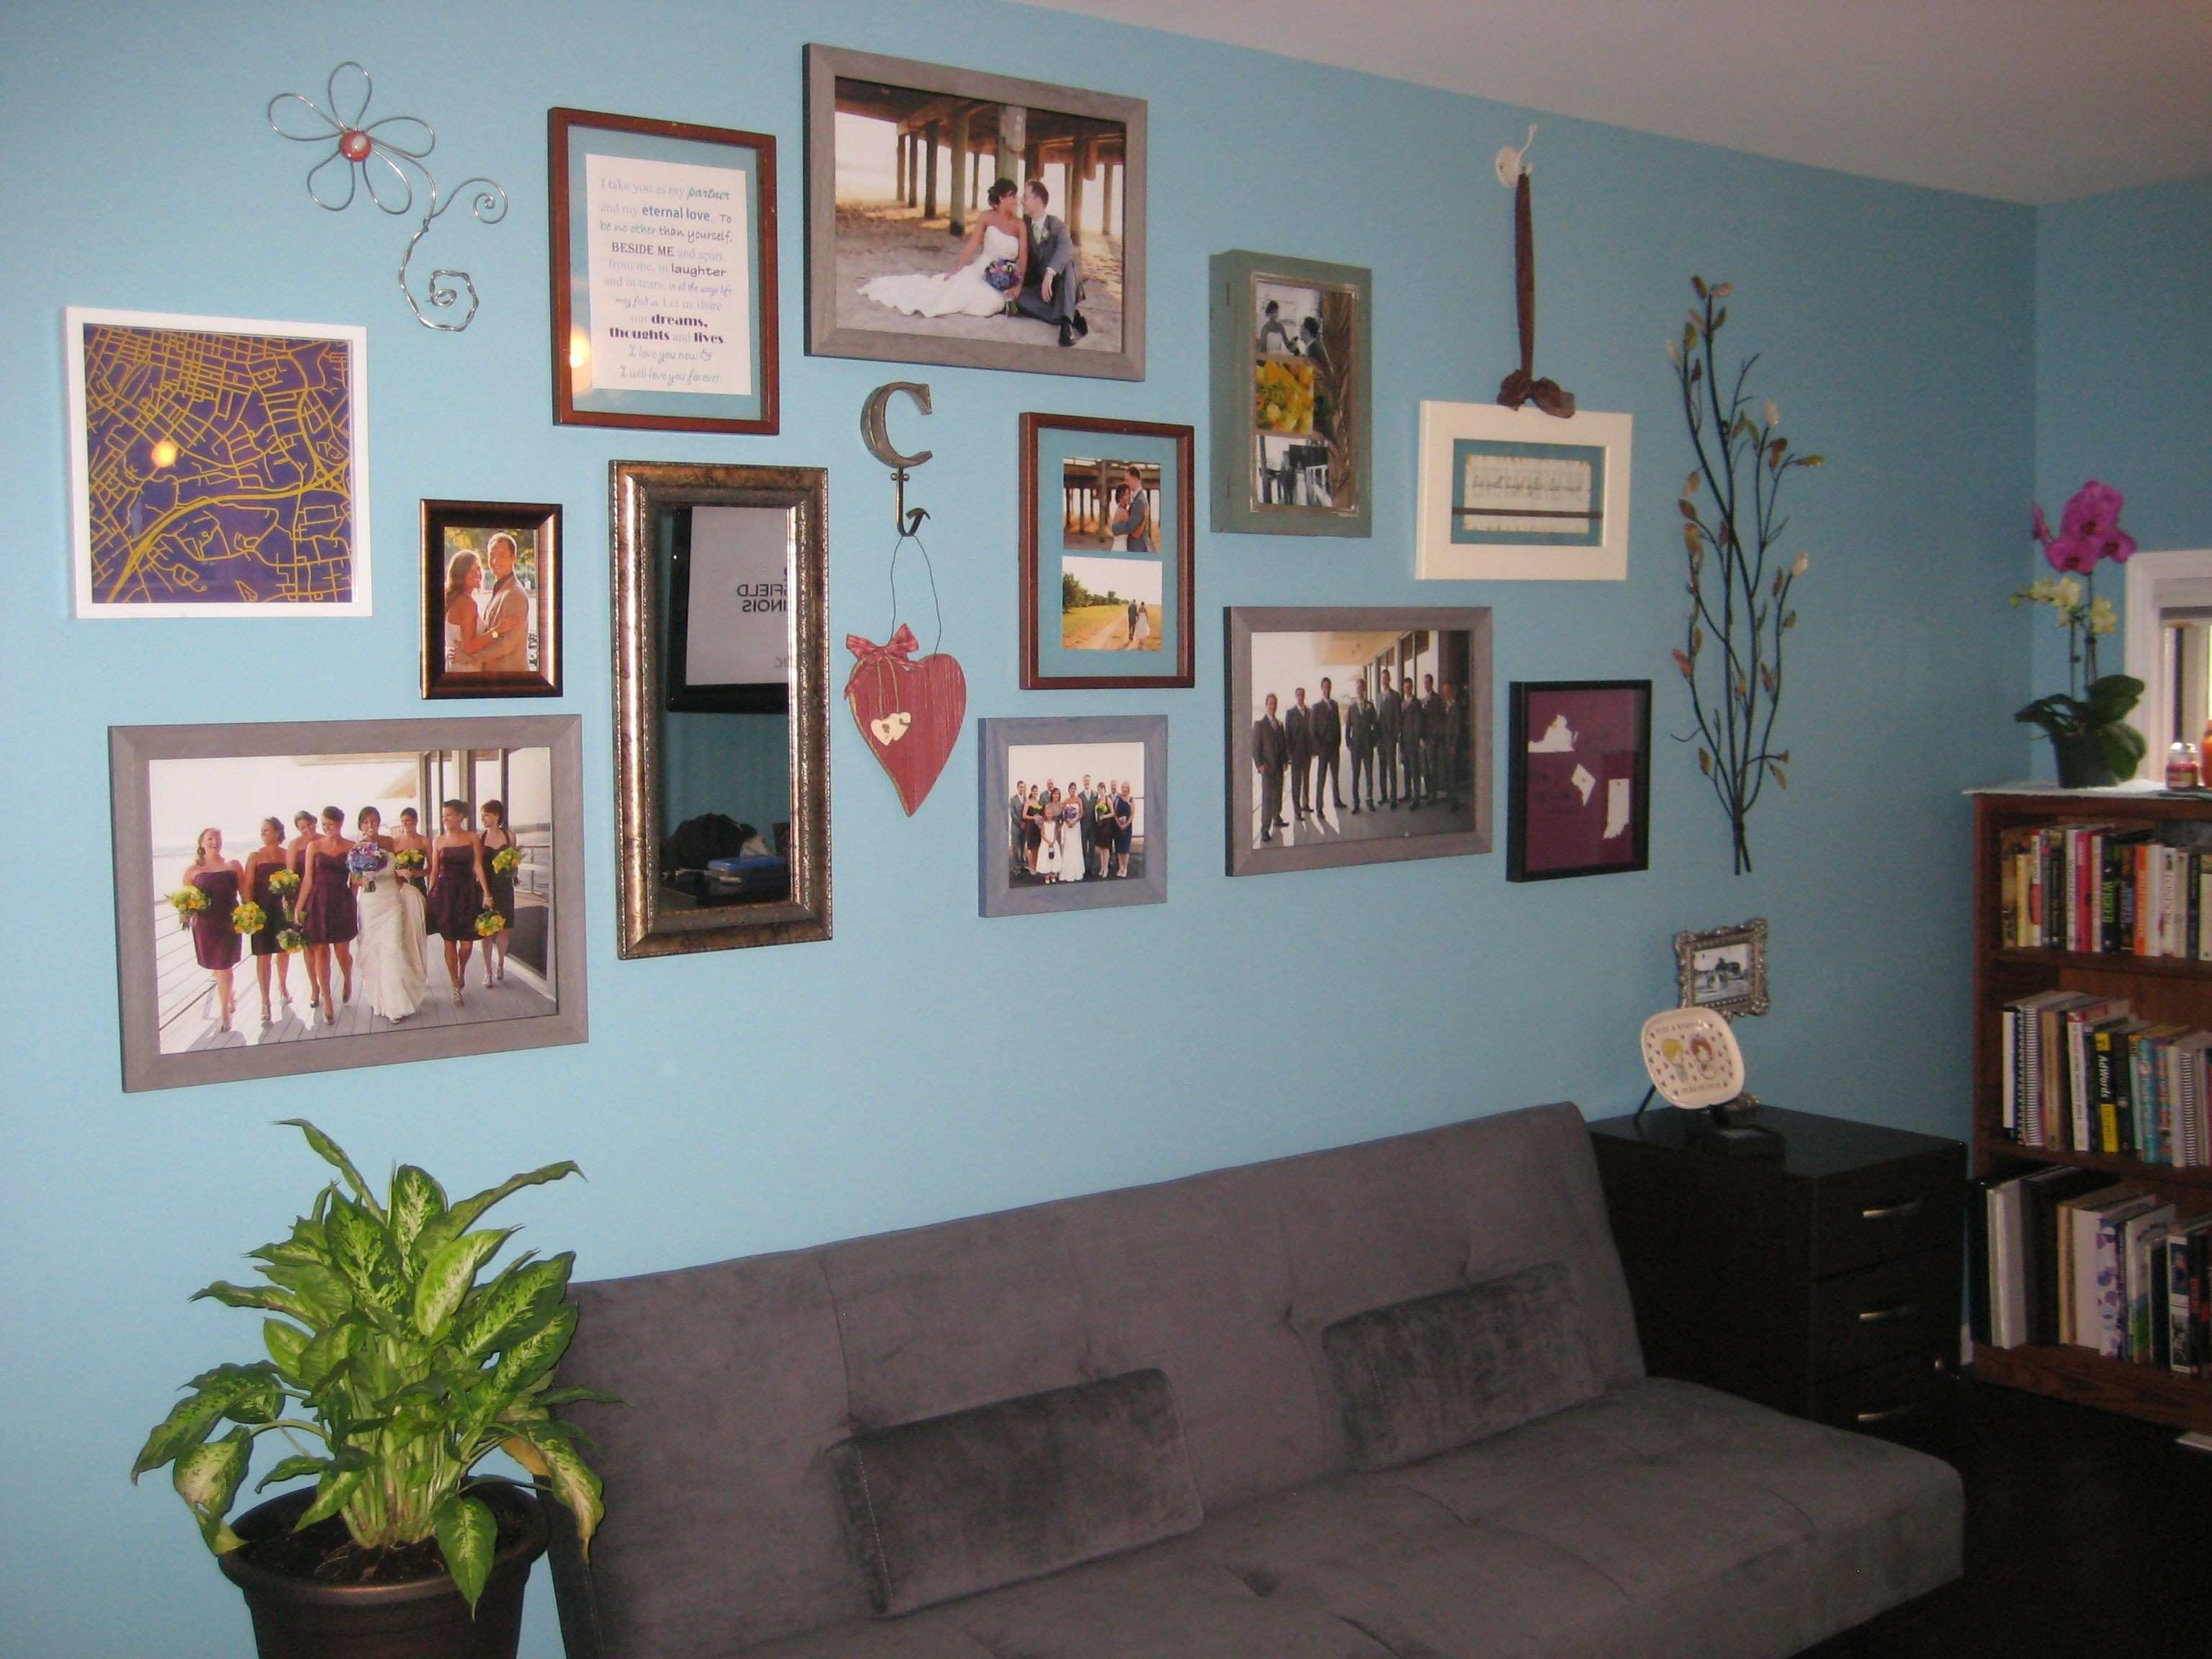 Wedding Collage Wall in the fice Blue and gray accents